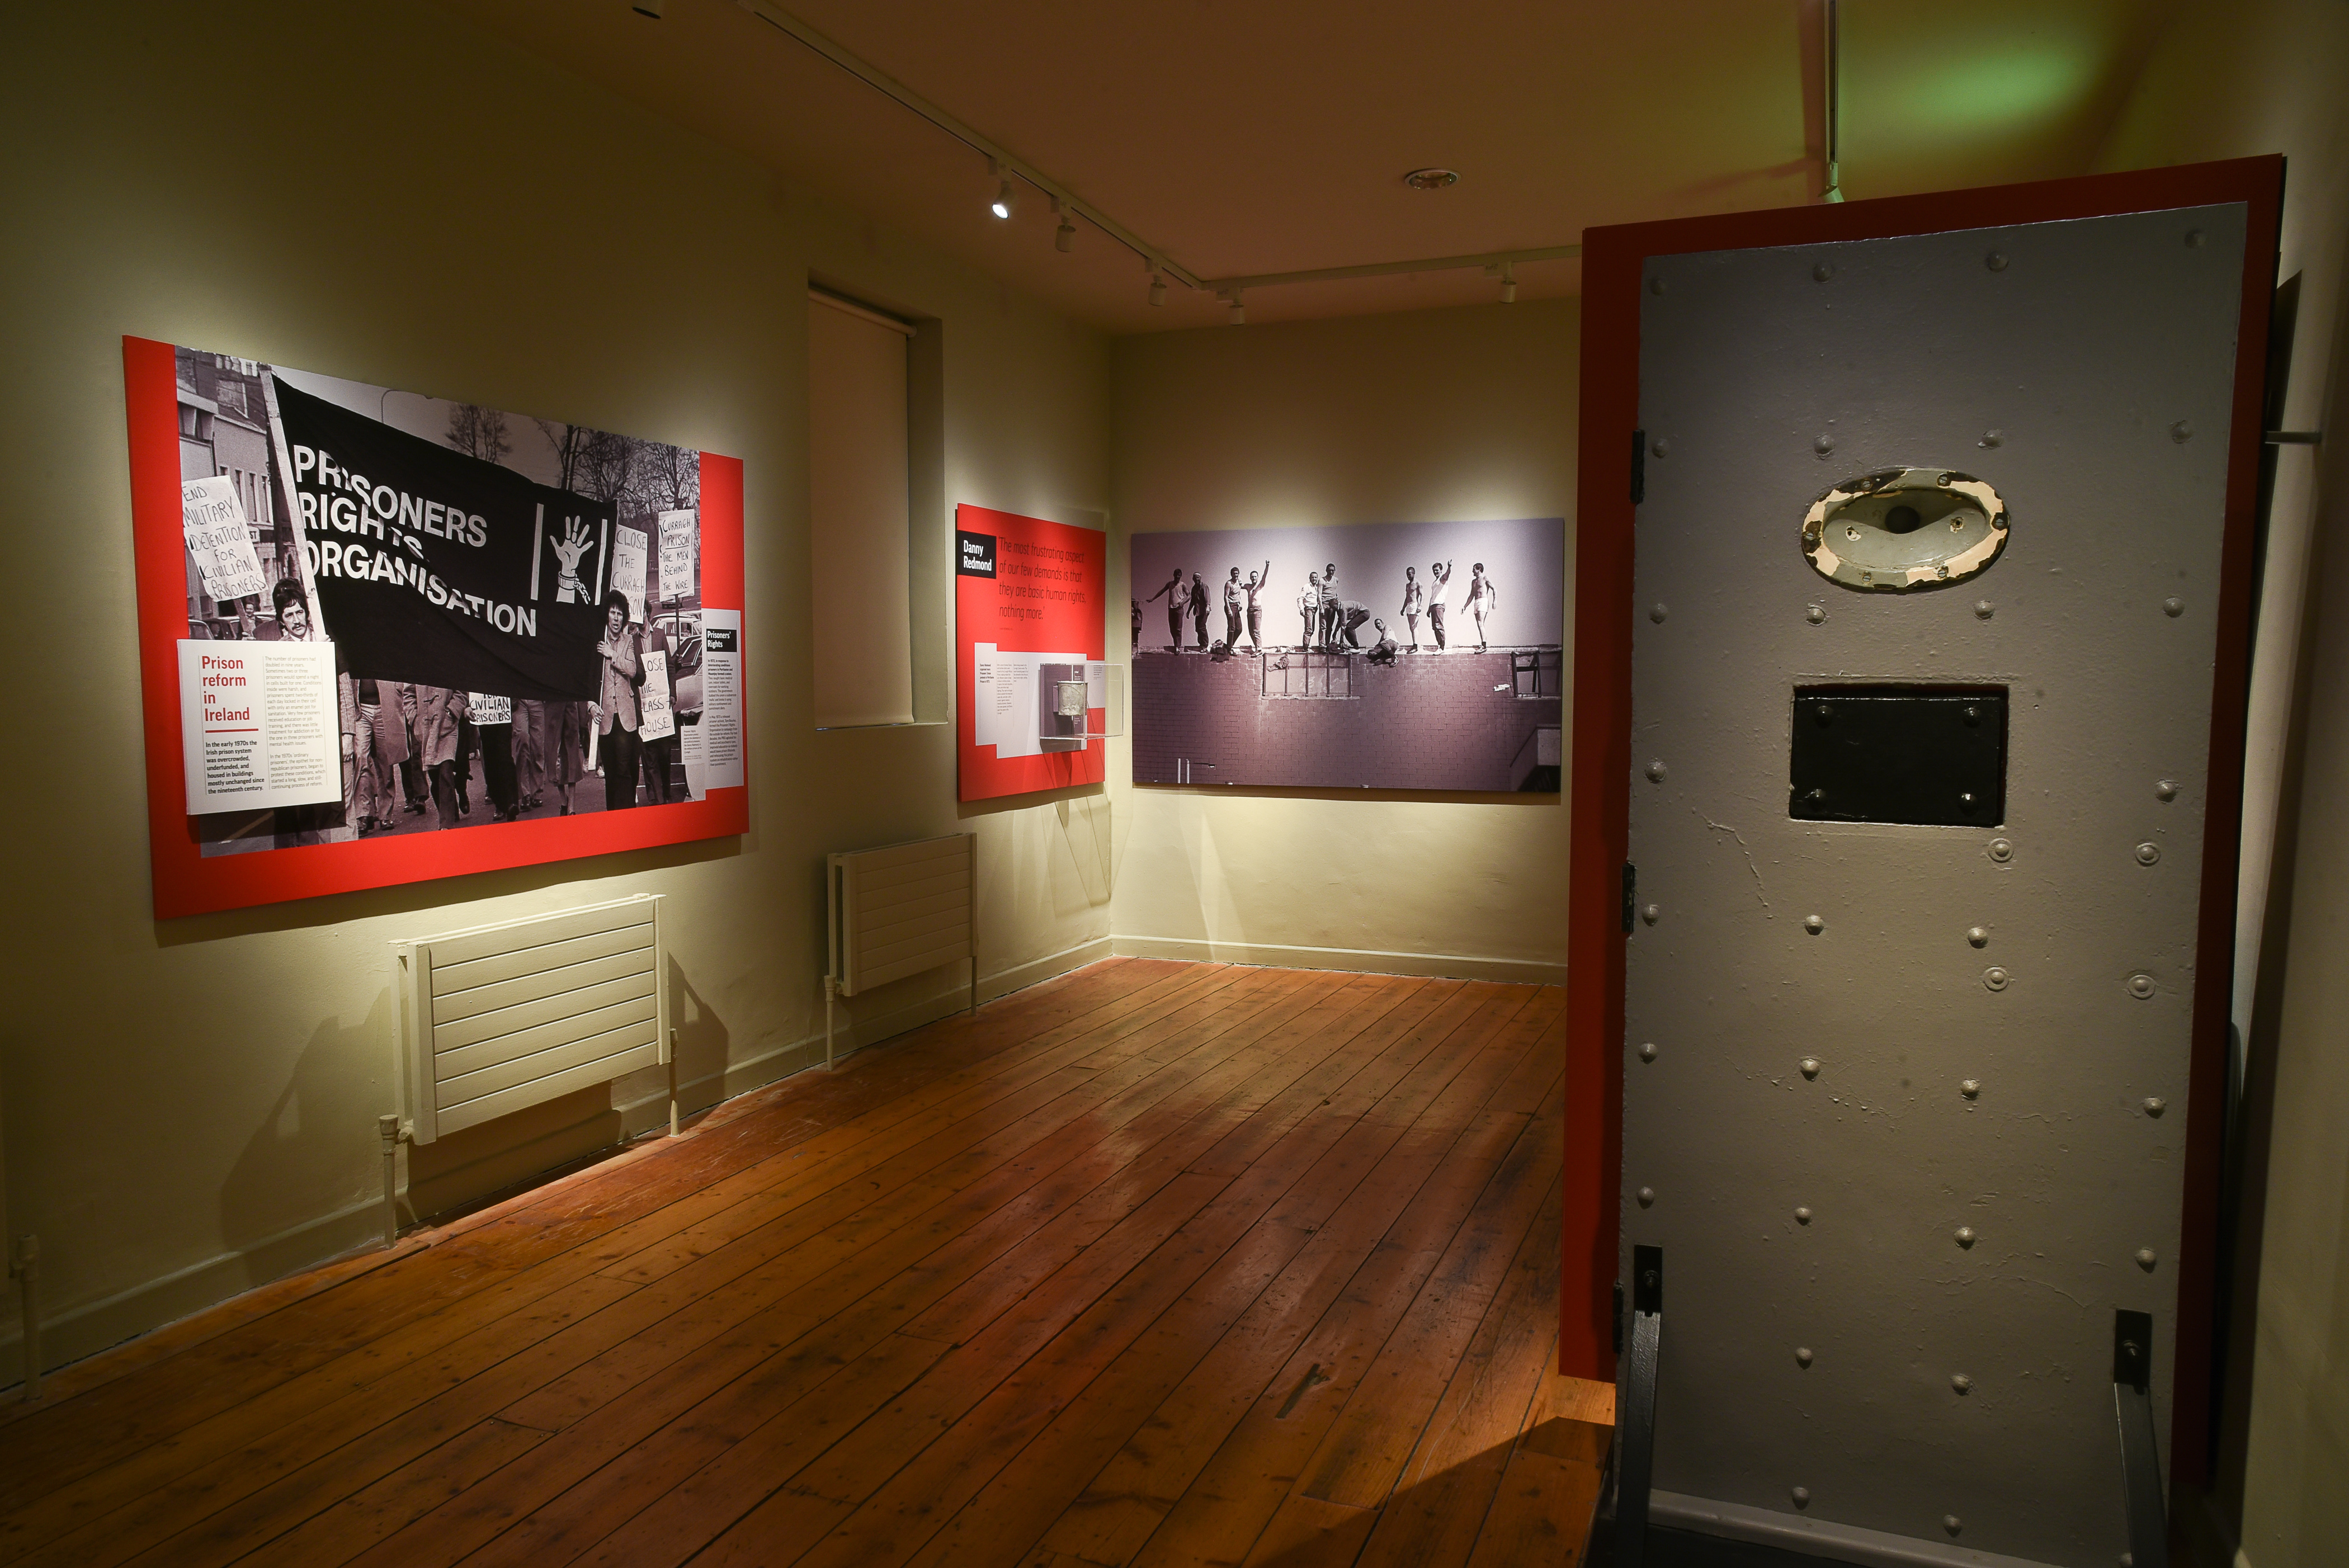 The exhibition uses historical objects and the evocative photography to Derek Speirs to tell six people's stories.